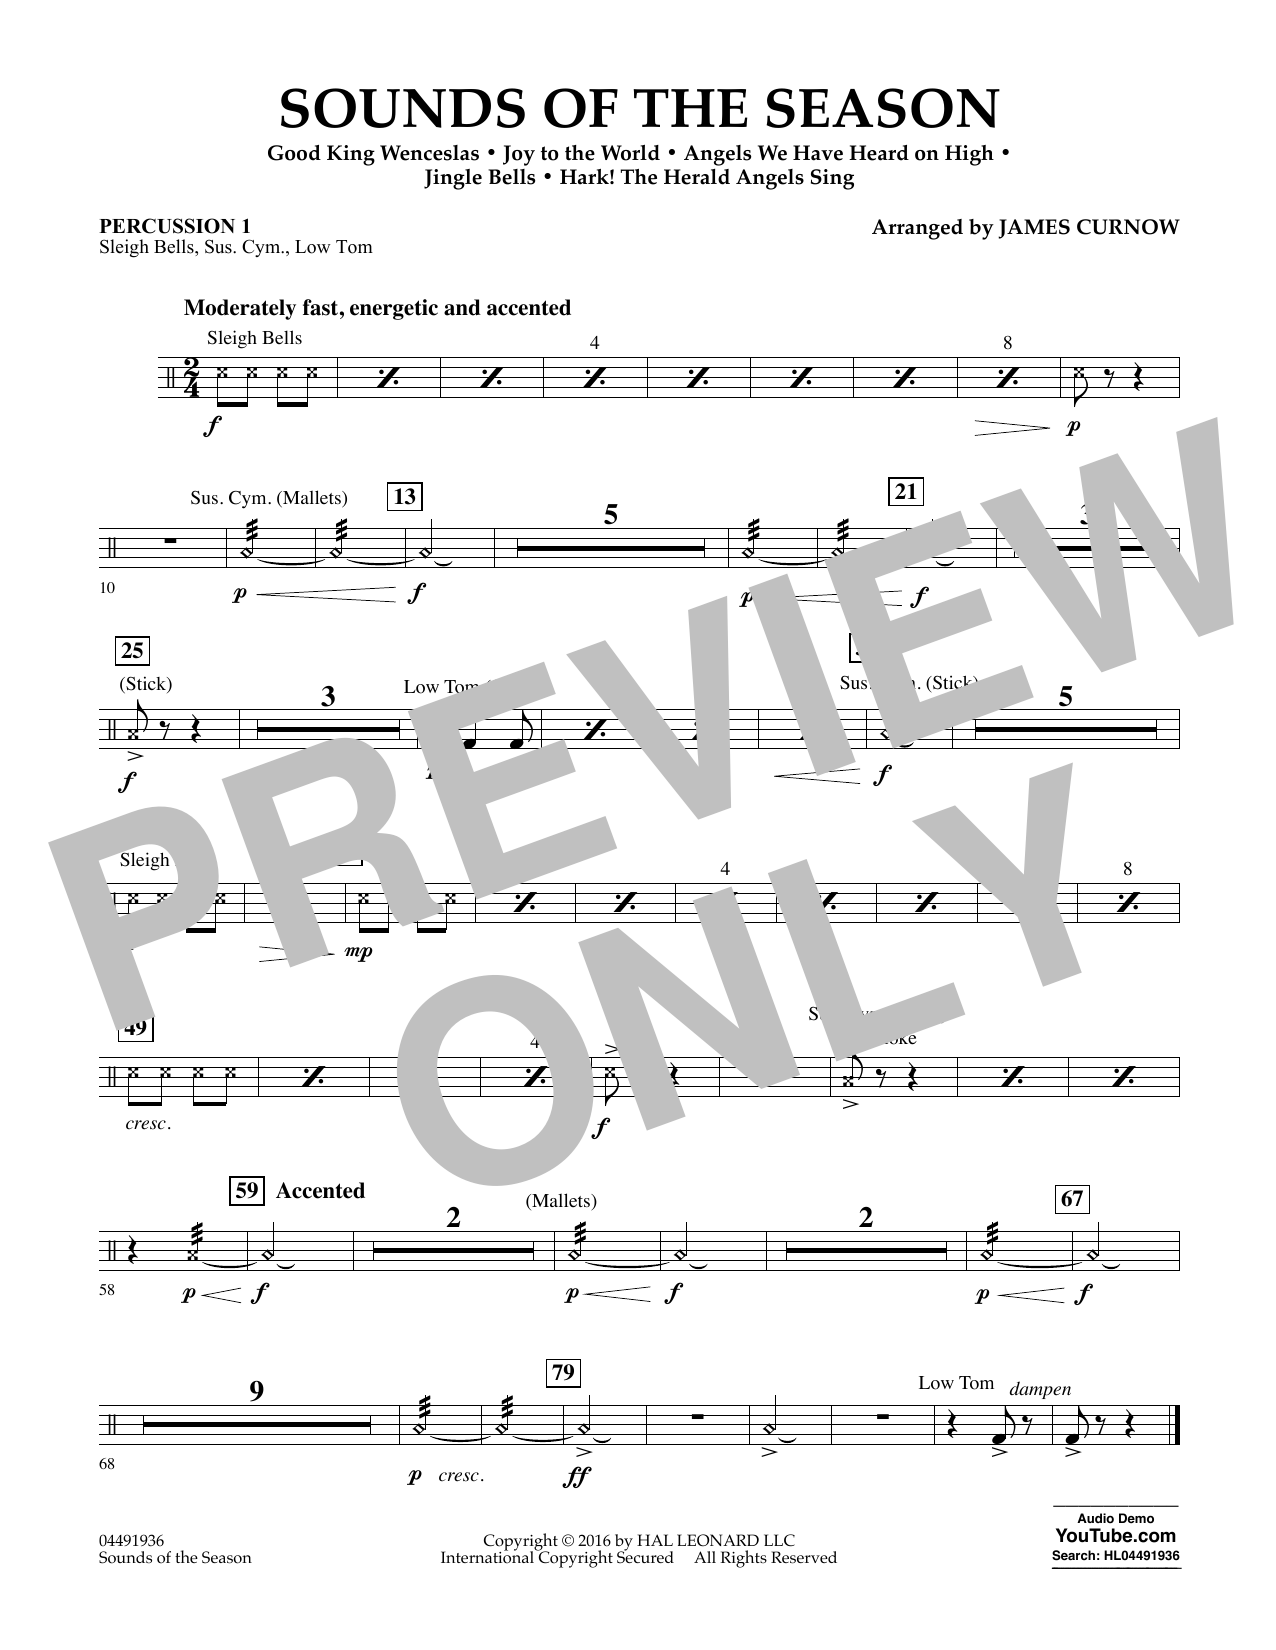 Sounds of the Season - Percussion 1 Sheet Music